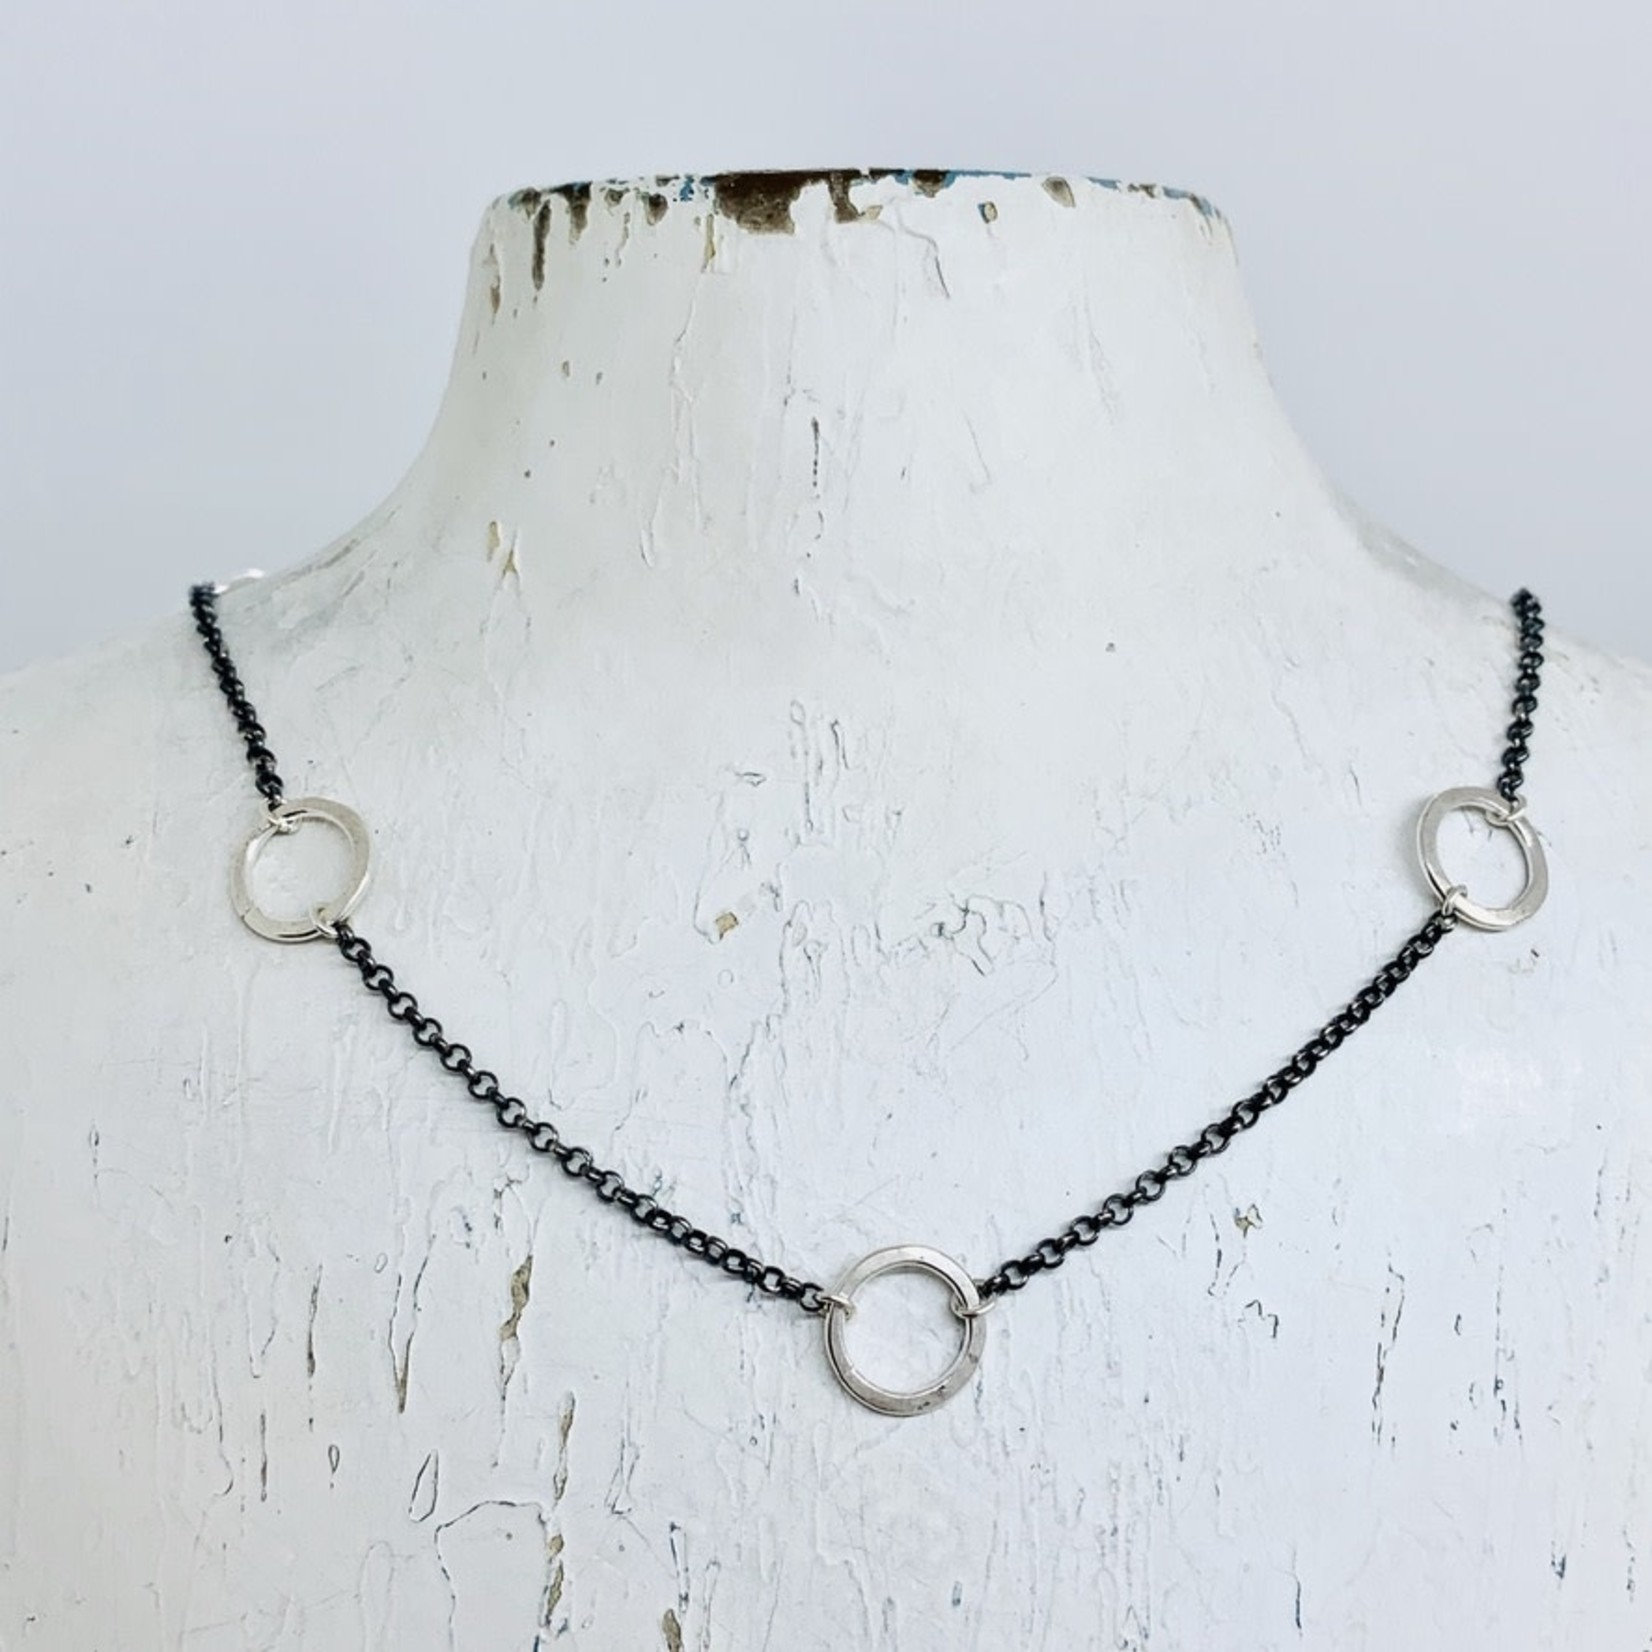 Handmade necklace with 8 shiny hammered rings, oxidized chain